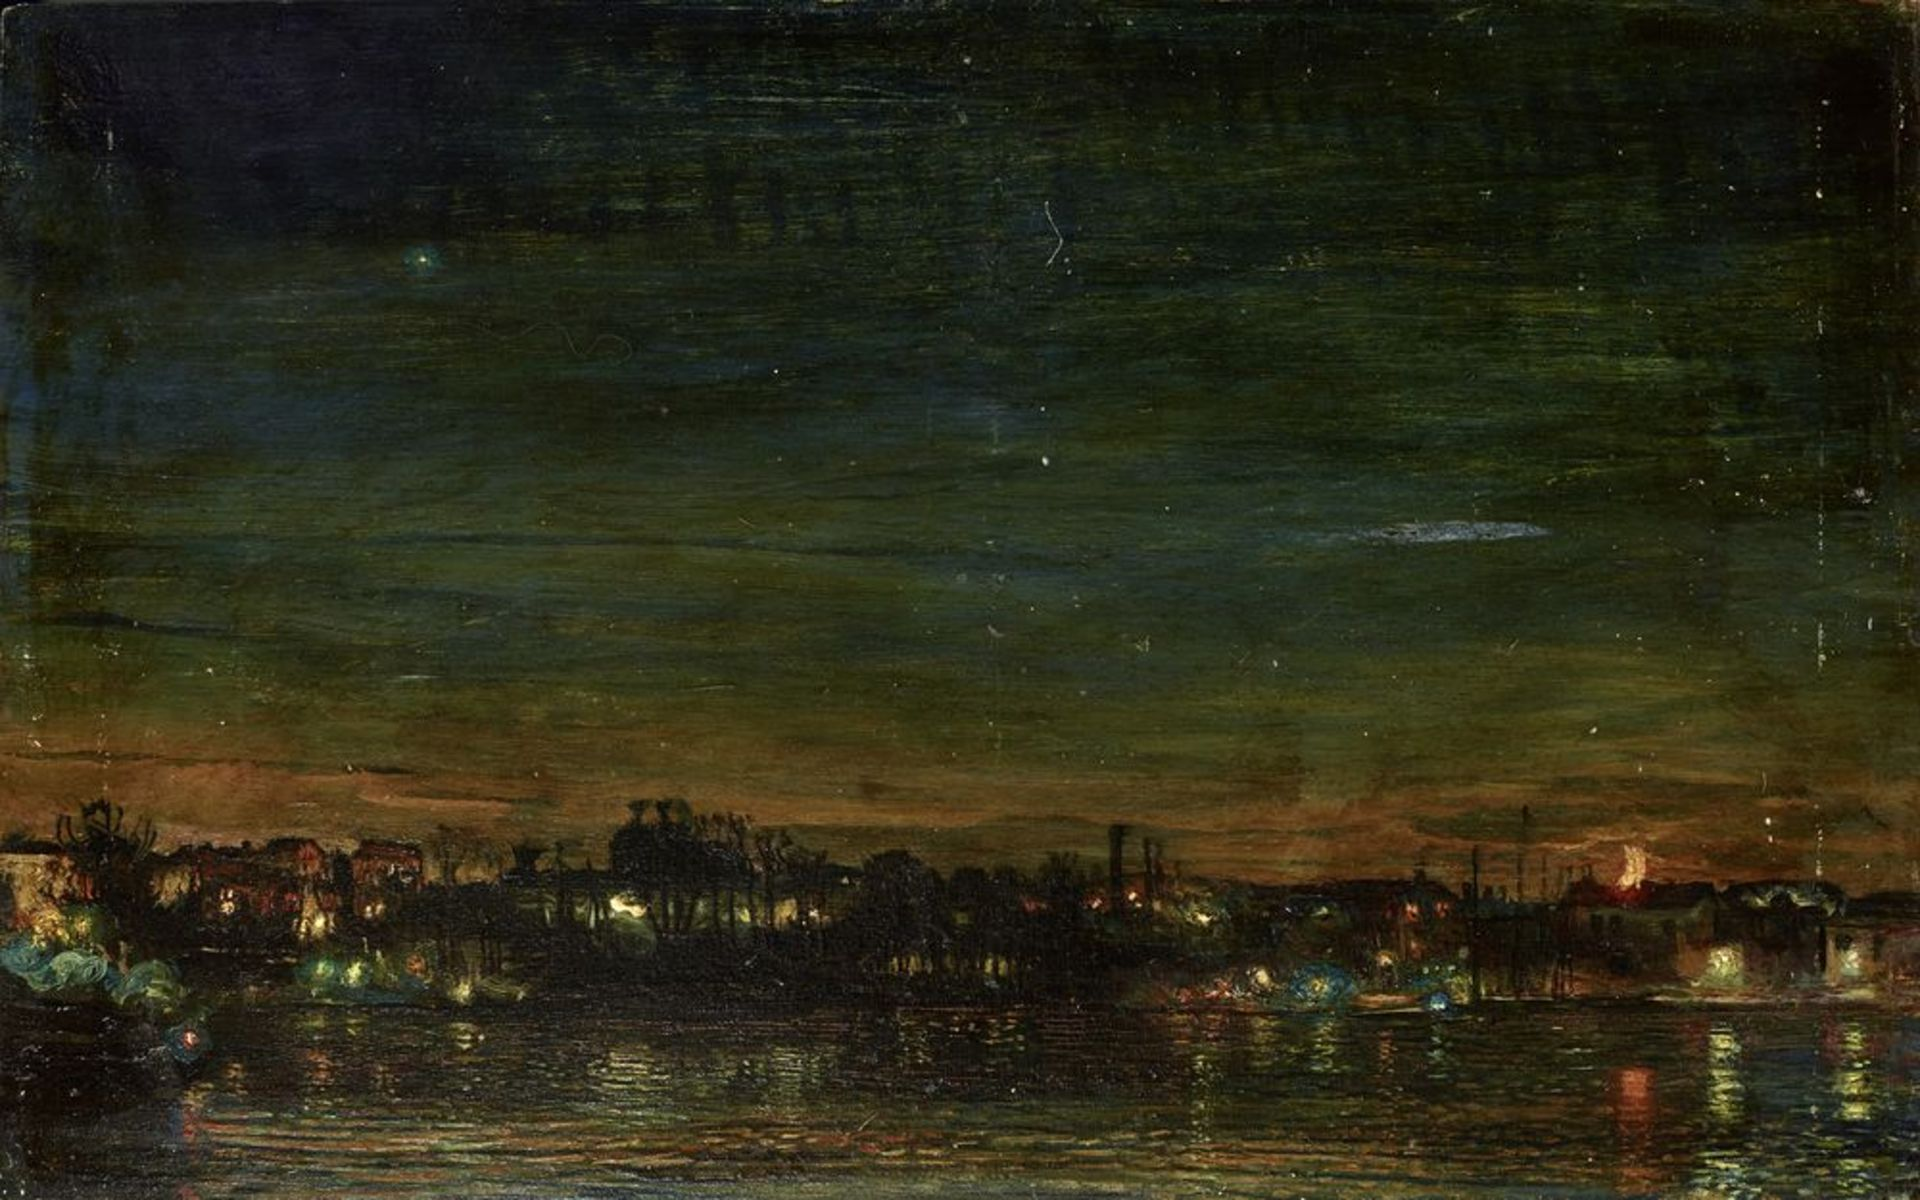 Los 32 - ISAAC IZRAILEVICH BRODSKY (1883-1939) - Night in a lacustry landscape (Night [...]